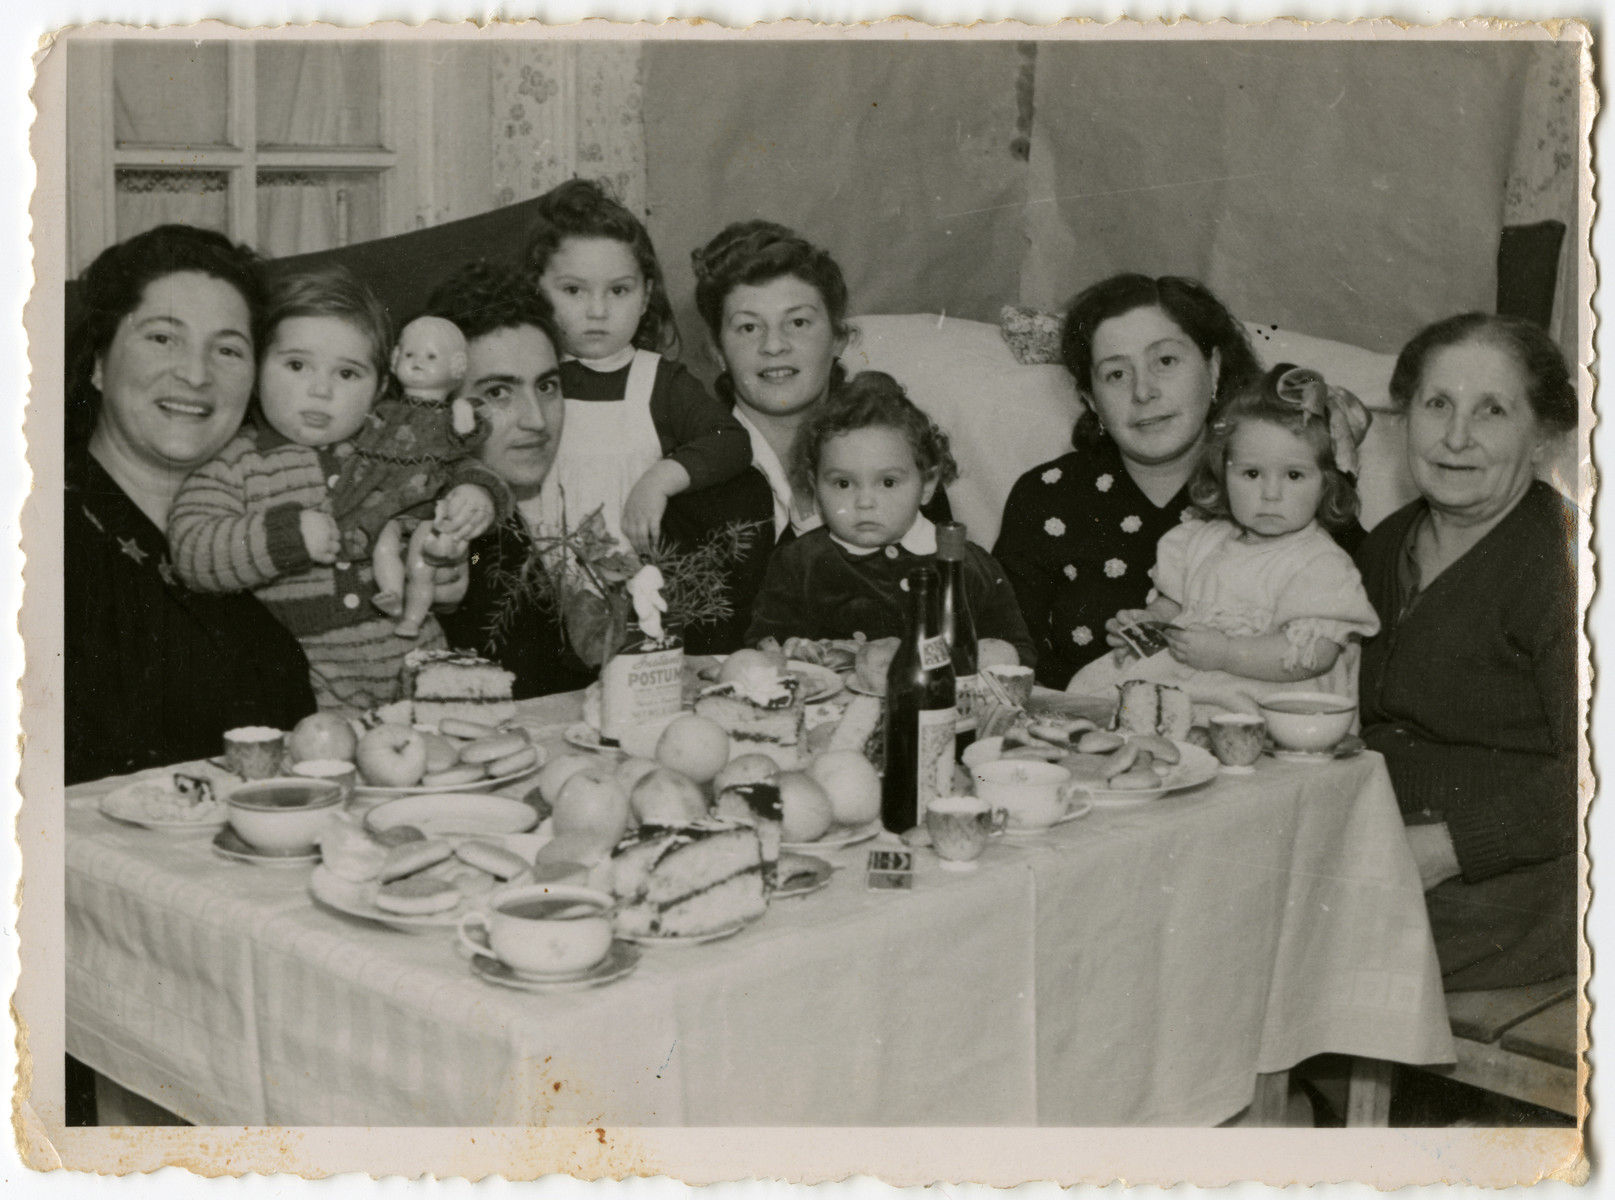 Mothers and toddlers gather around a festive table in the Schlachtensee displaced persons' camp.